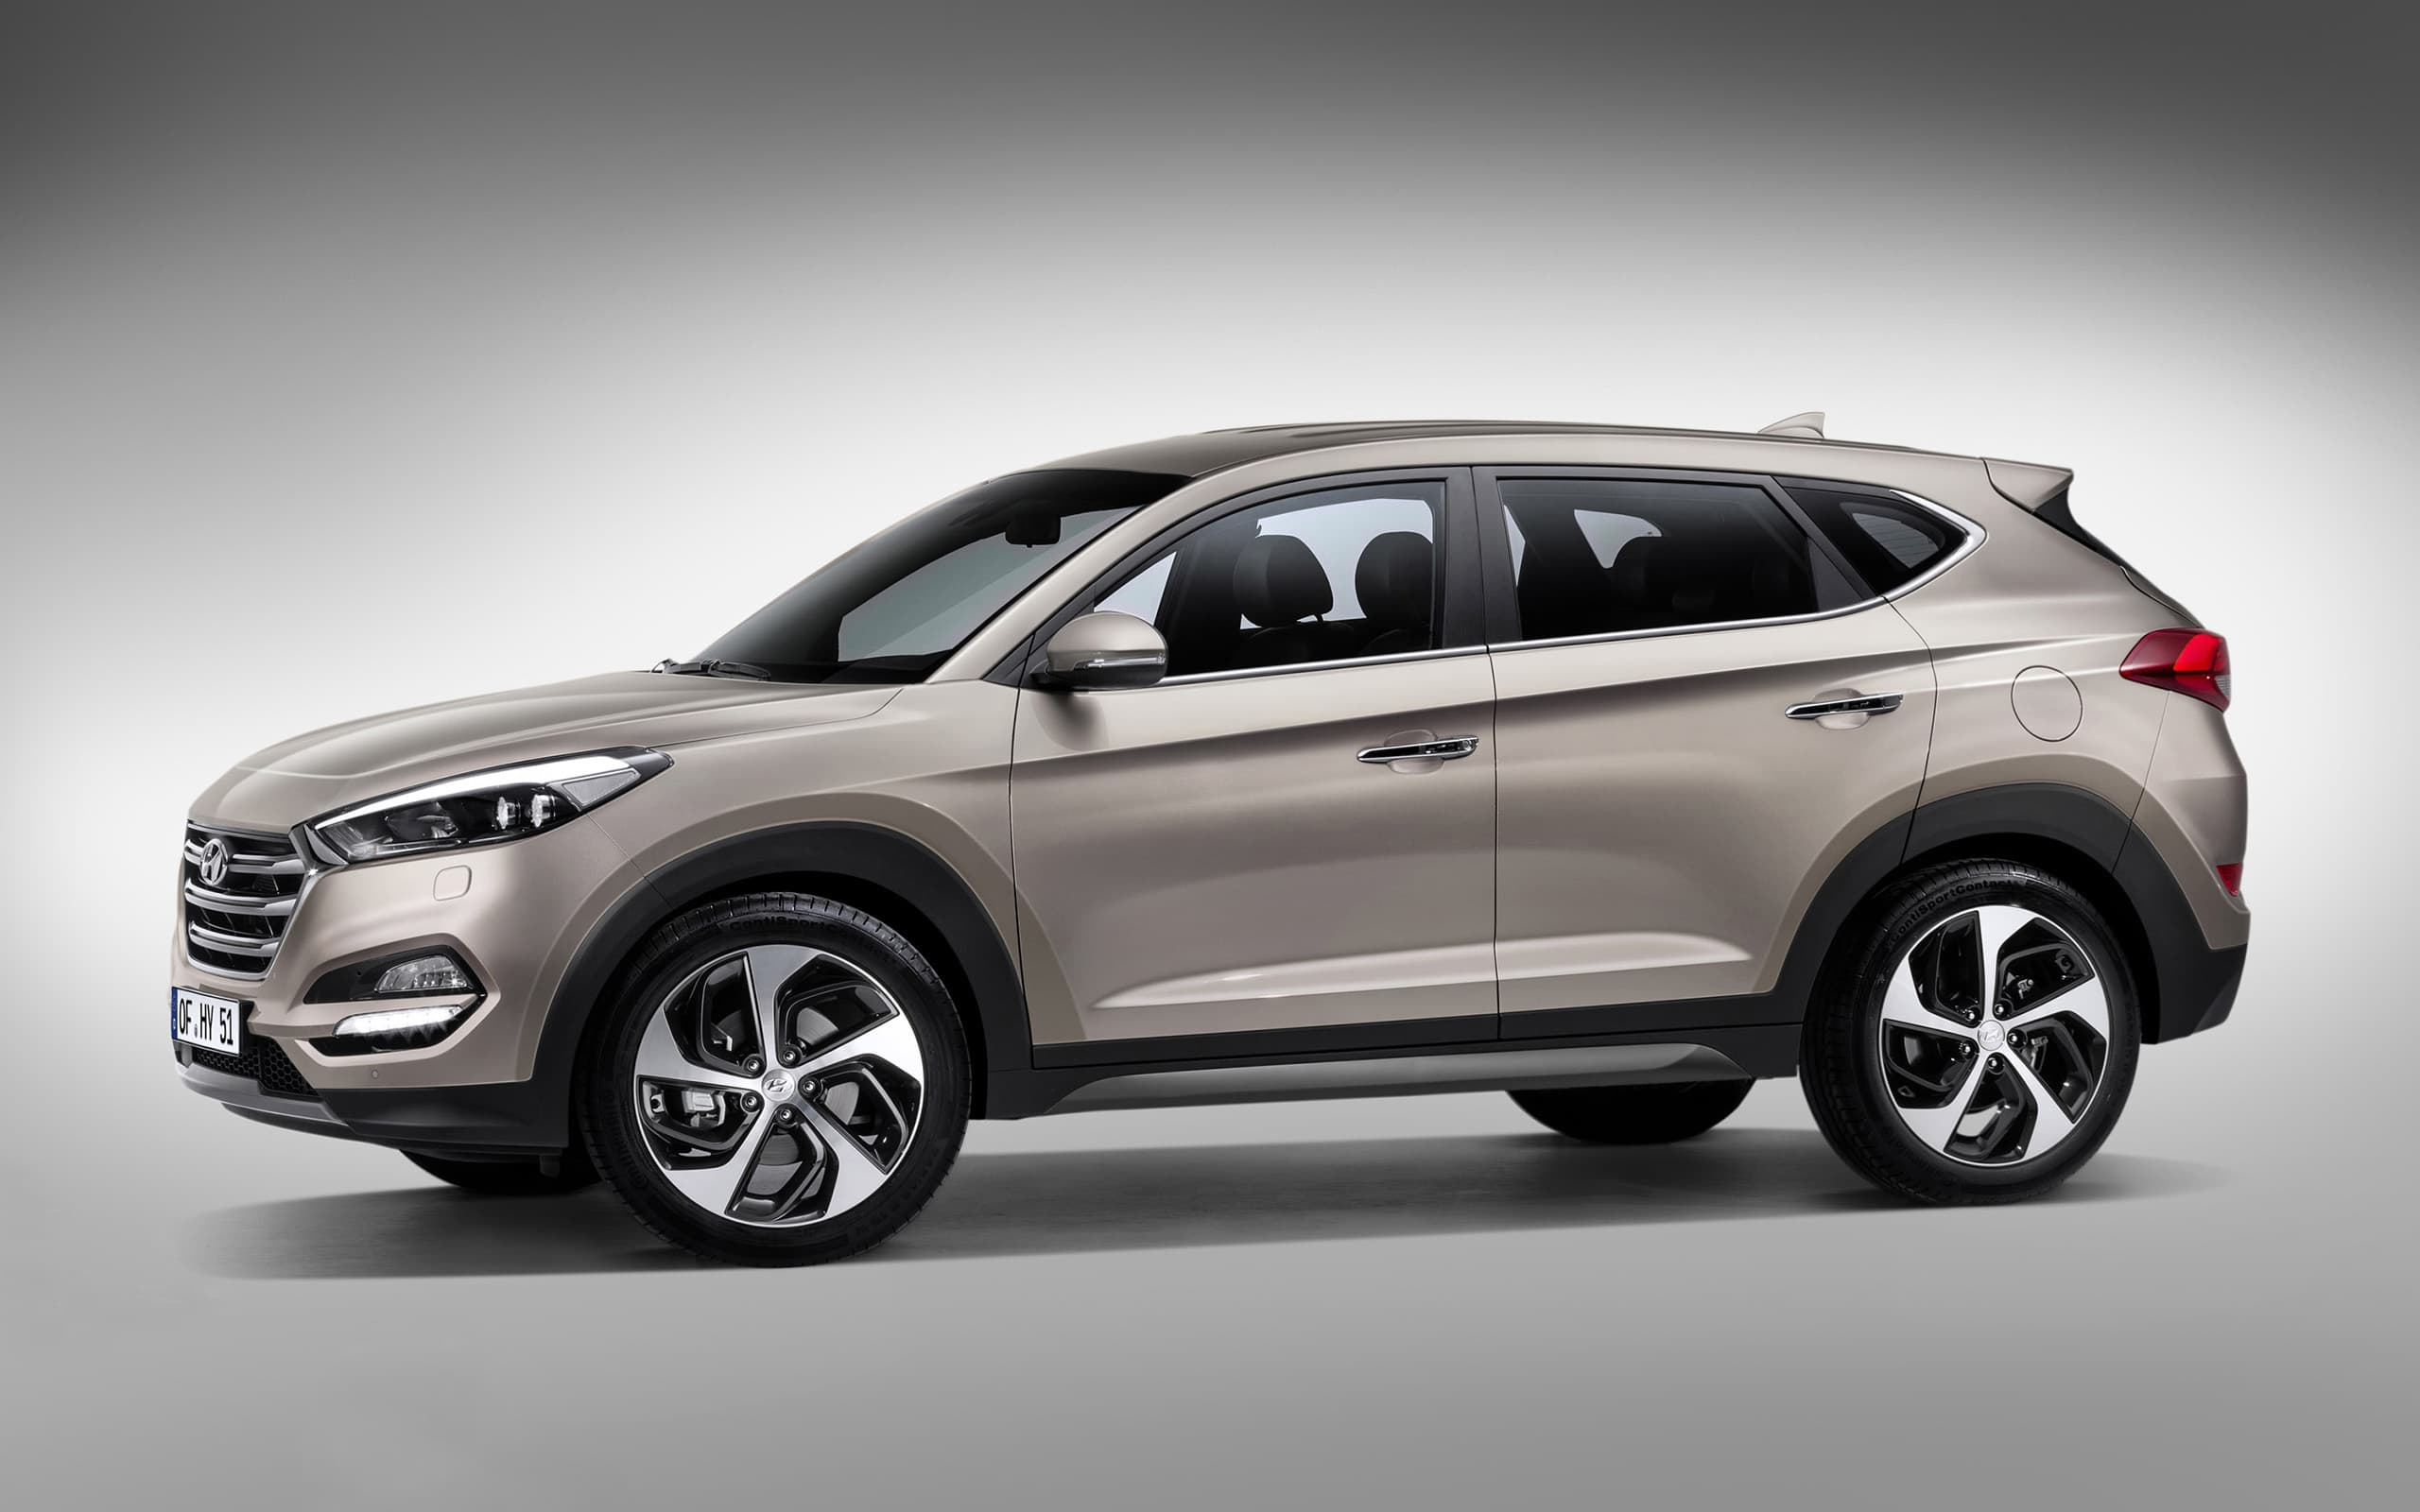 Hyundai Tucson 2016 Grey High Quality